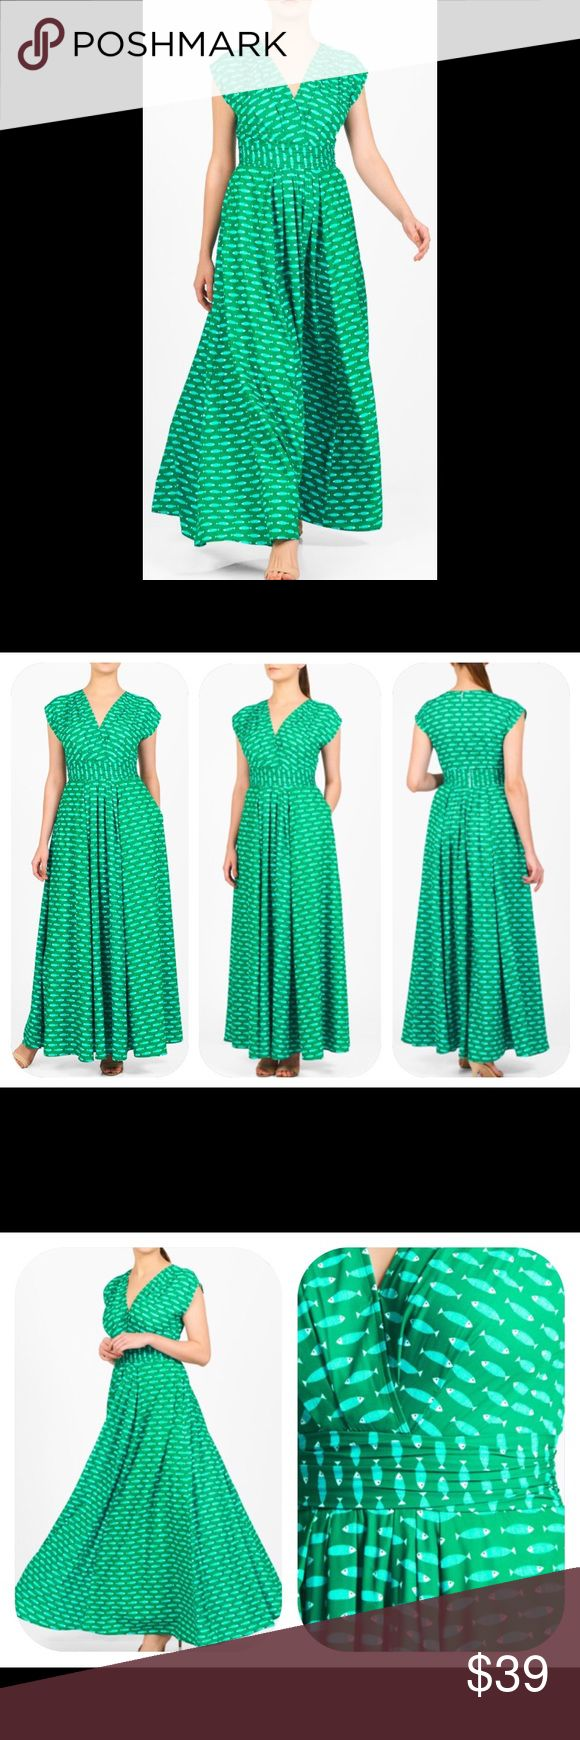 """New Eshakti Green Fish Orint Crepe Maxi Dress 22W New Eshakti green fish print crepe maxi dress Size 22W  Measured flat: underarm to underarm: 44 ½""""  Waist: 42"""" Length: 56 ½""""  Eshakti size guide for 22W bust: 49"""" Flirty surplice v-neck, pleated empire waist banding, box pleating at bodice & skirt. Dolman cap sleeves, inner shoulder bra strap keeps, back hidden zipper w/ hook & eye closure. Lined in polyester moss crepe. Polyester, woven crepe, easy drape, no stretch. Machine wash cold. New…"""